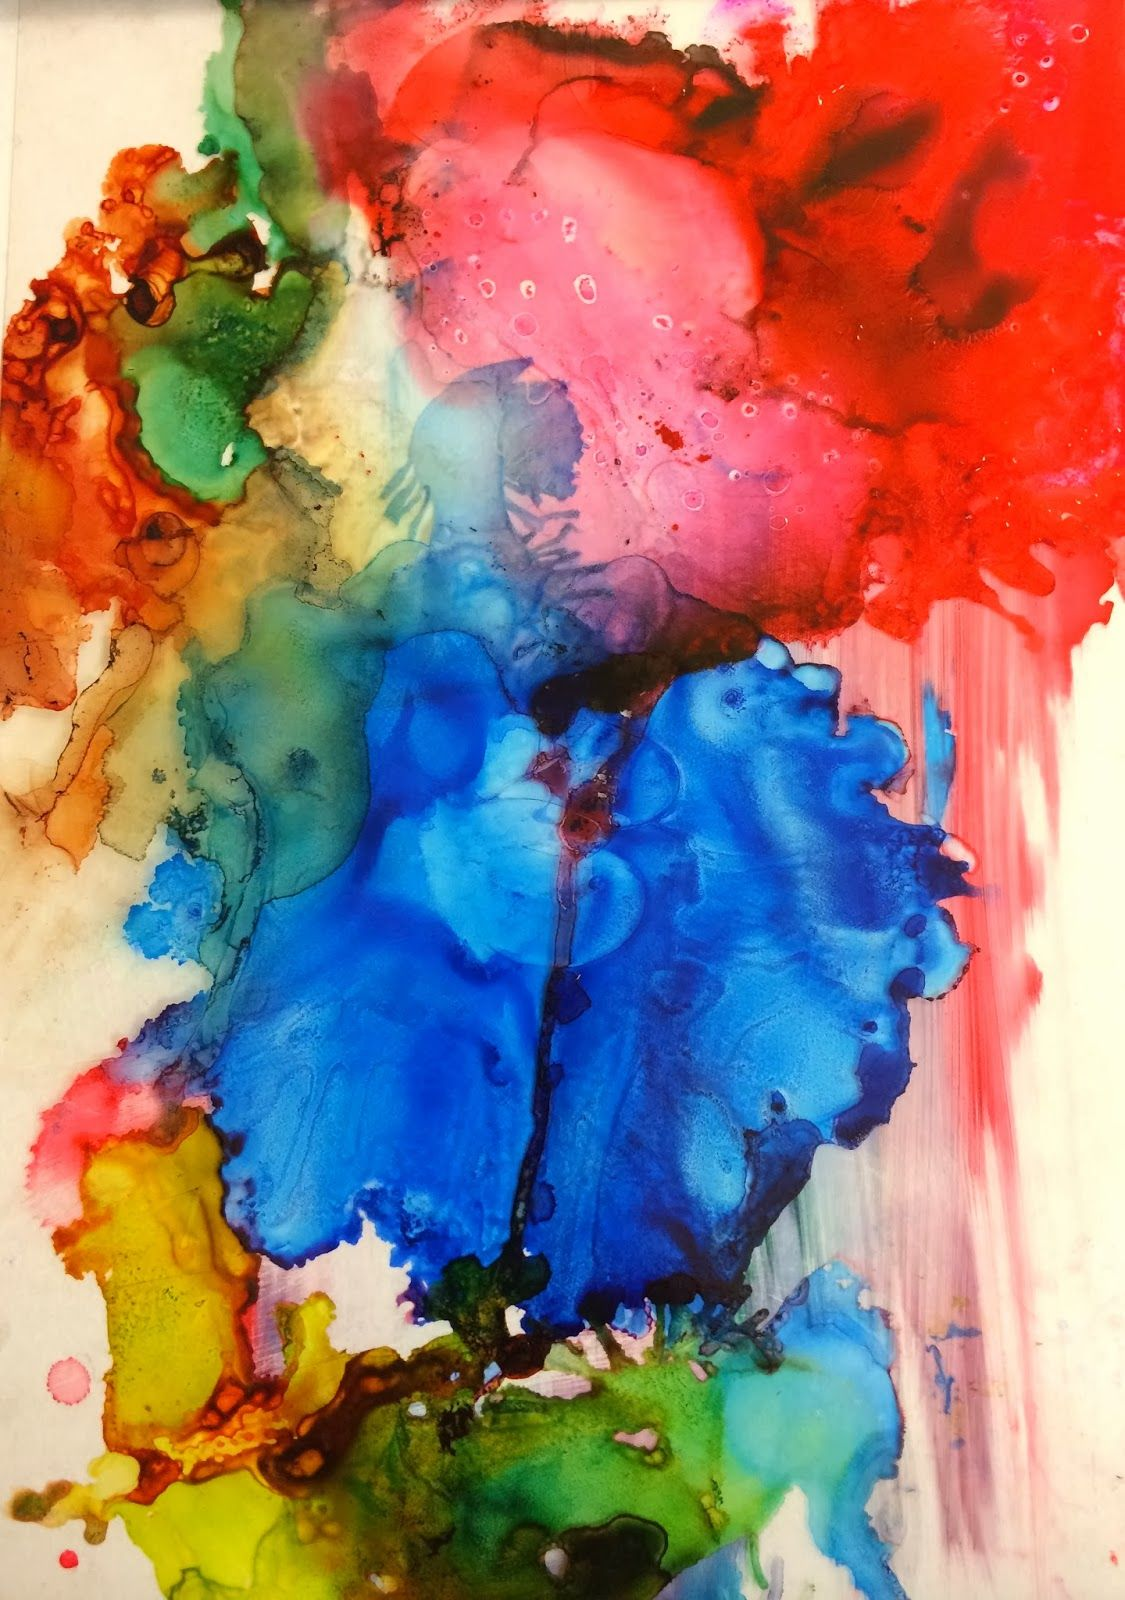 Abstract Art Using Transparencies Rubbing Alcohol And Alcohol Based Ink